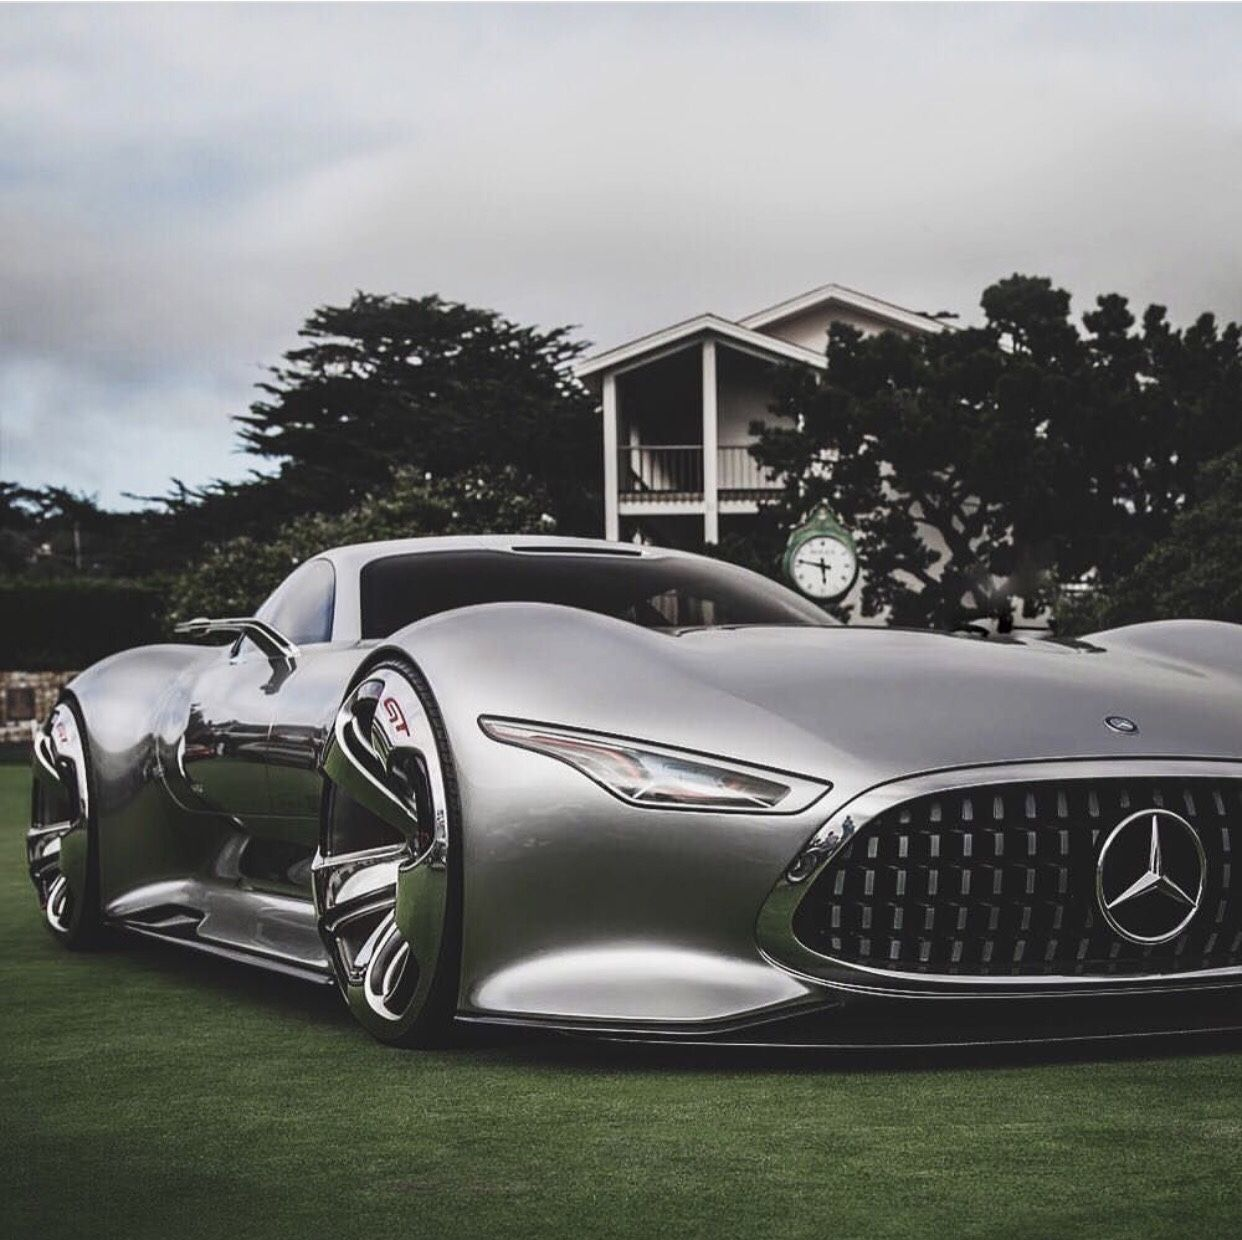 Pin By Style Estate On Drive In Style Pinterest Luxury Blog - Sports cars you can daily drive